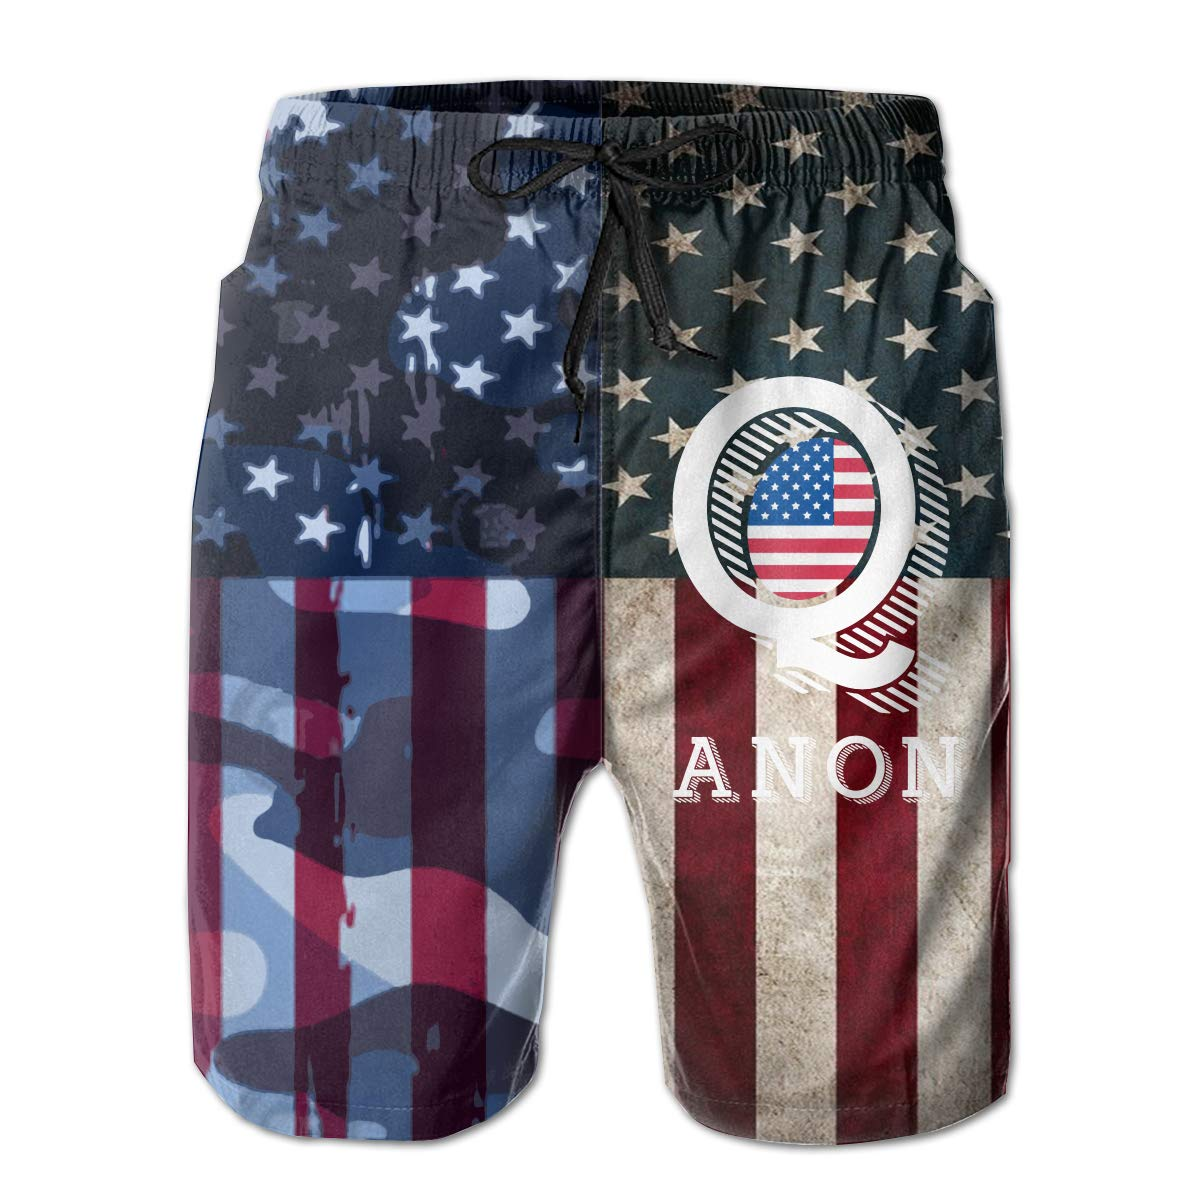 CCNXFGOK Qanon Boardshorts Mens Swimtrunks Fashion Beach Shorts Casual Shorts Swim Trunks